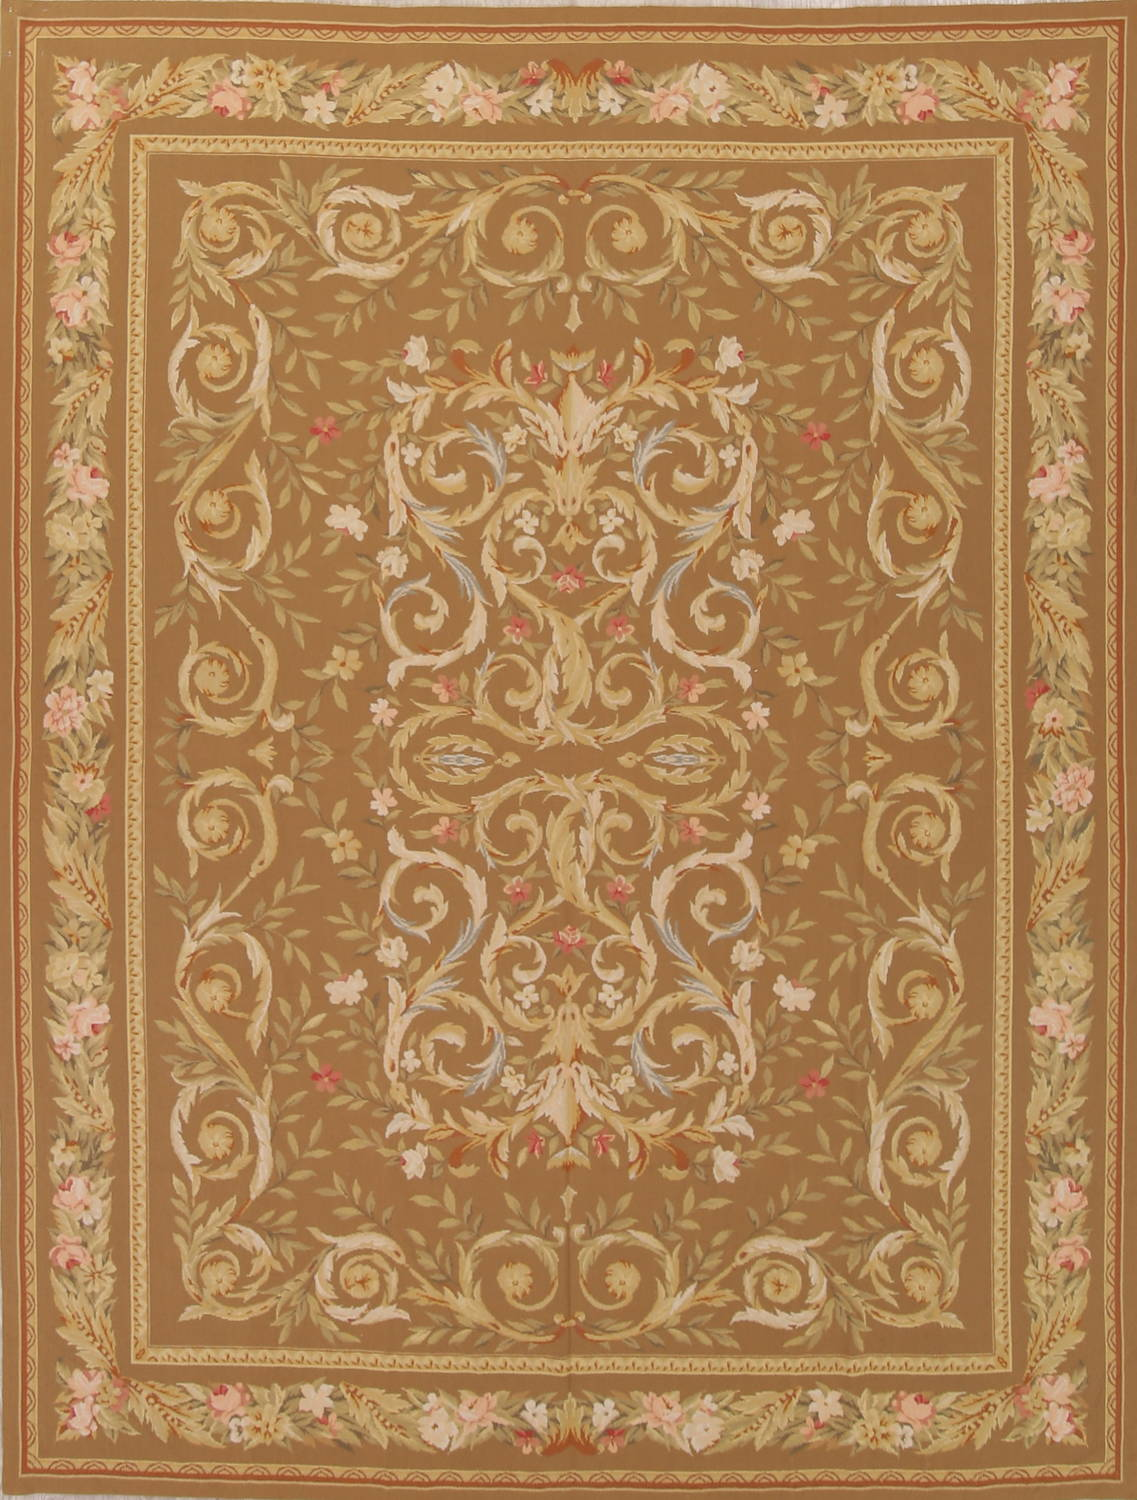 Floral Brown Aubusson Chinese Oriental Hand-Woven Area Rug Wool 8x10 image 1